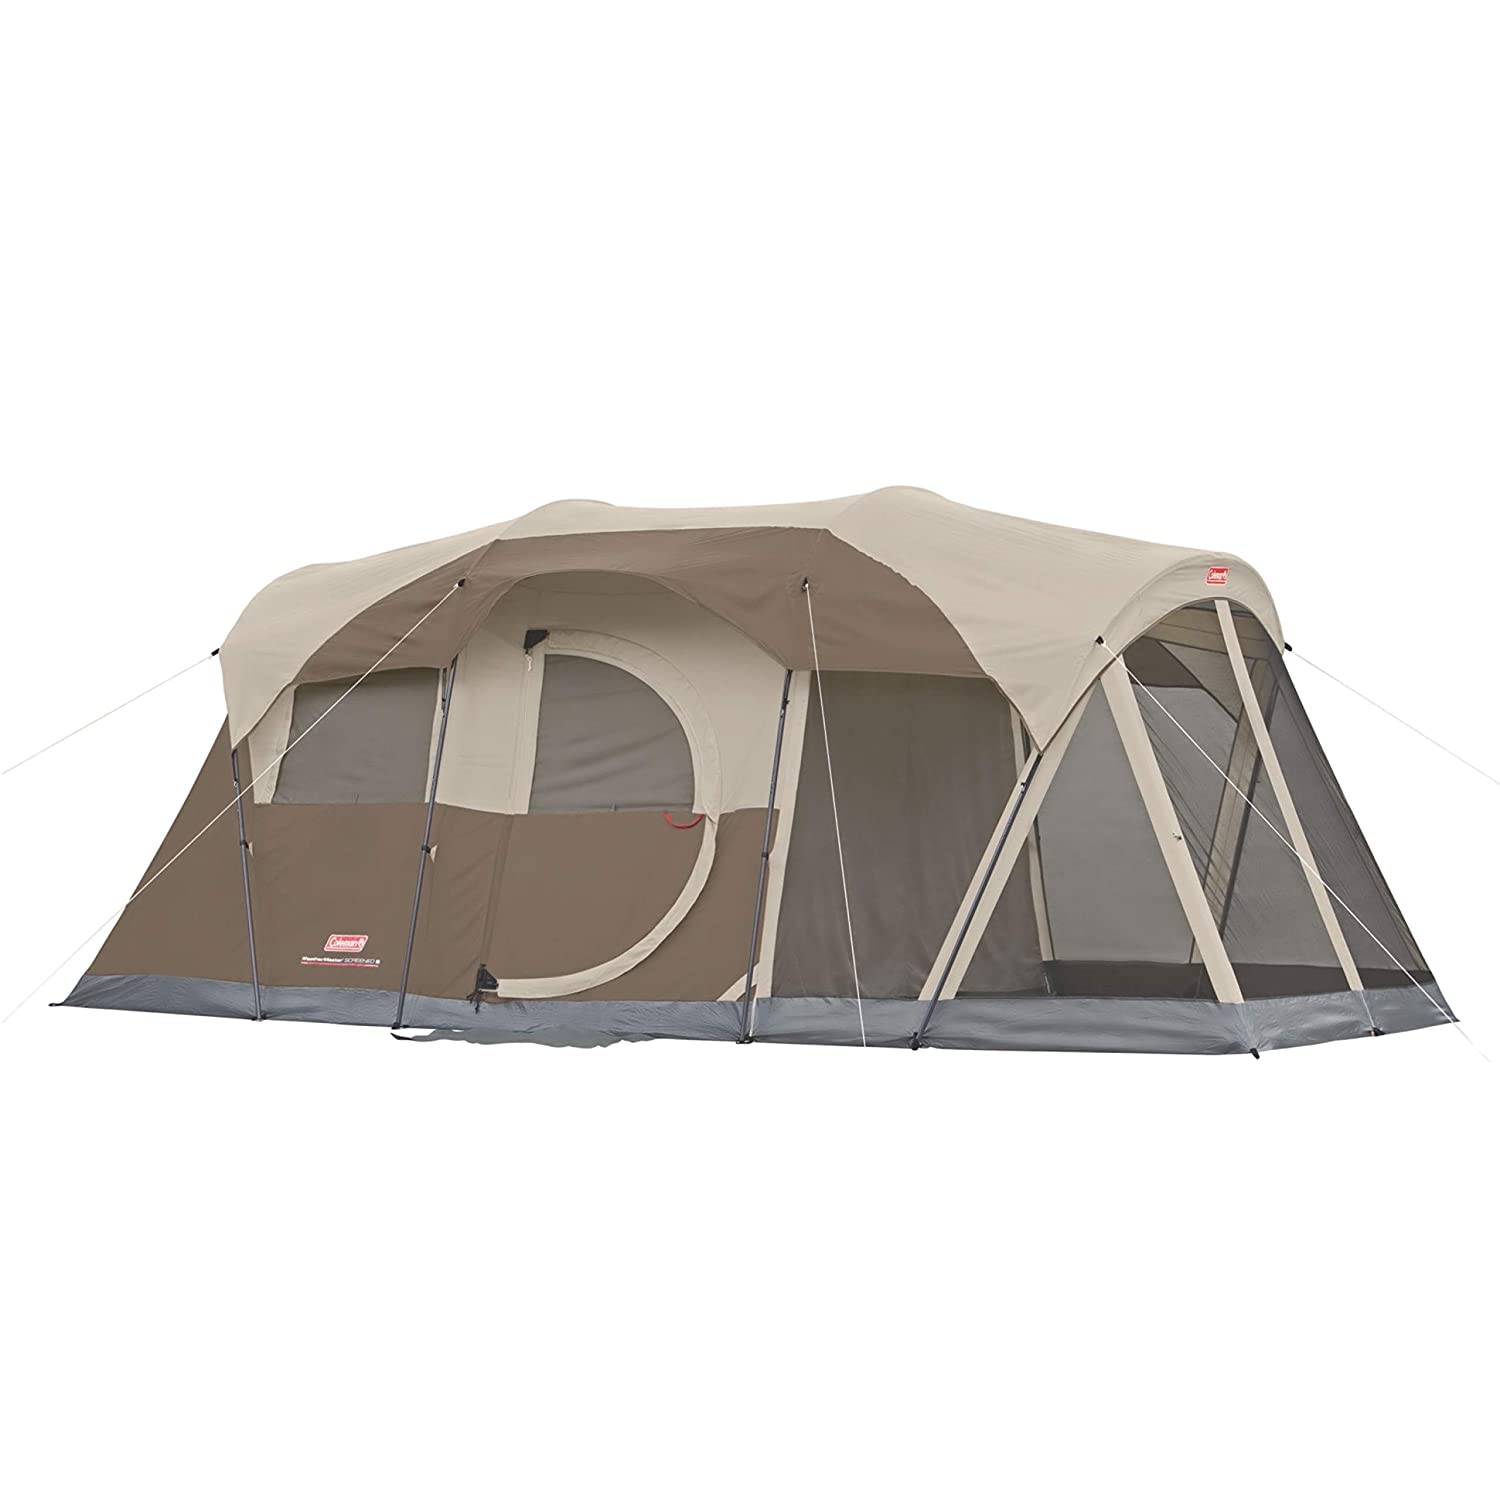 Coleman WeatherMaster 6 Person Tent Image